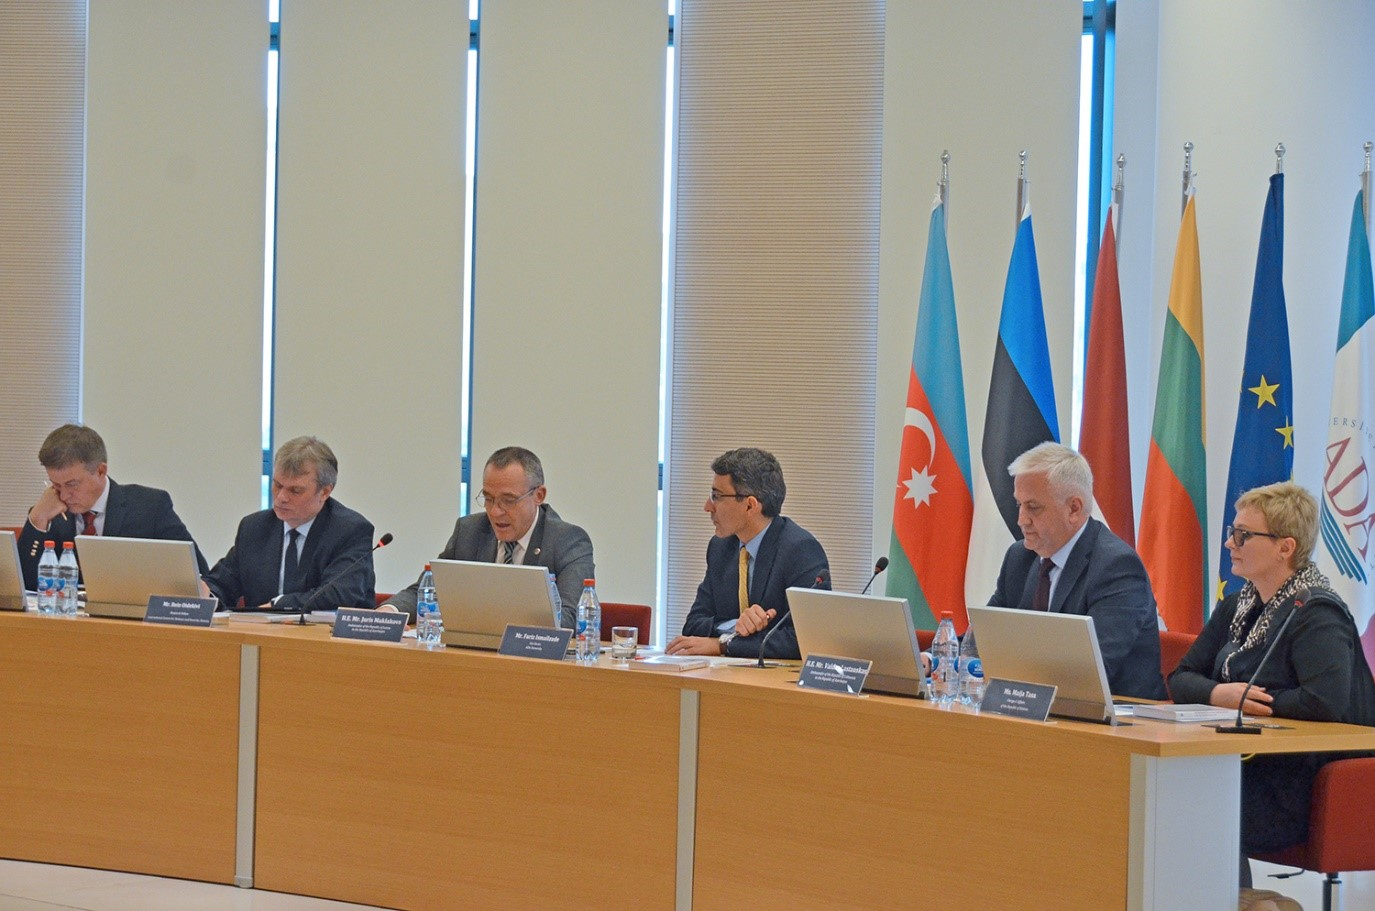 Image for Rein Oidekivi made a presentation in the conference at ADA University in Baku